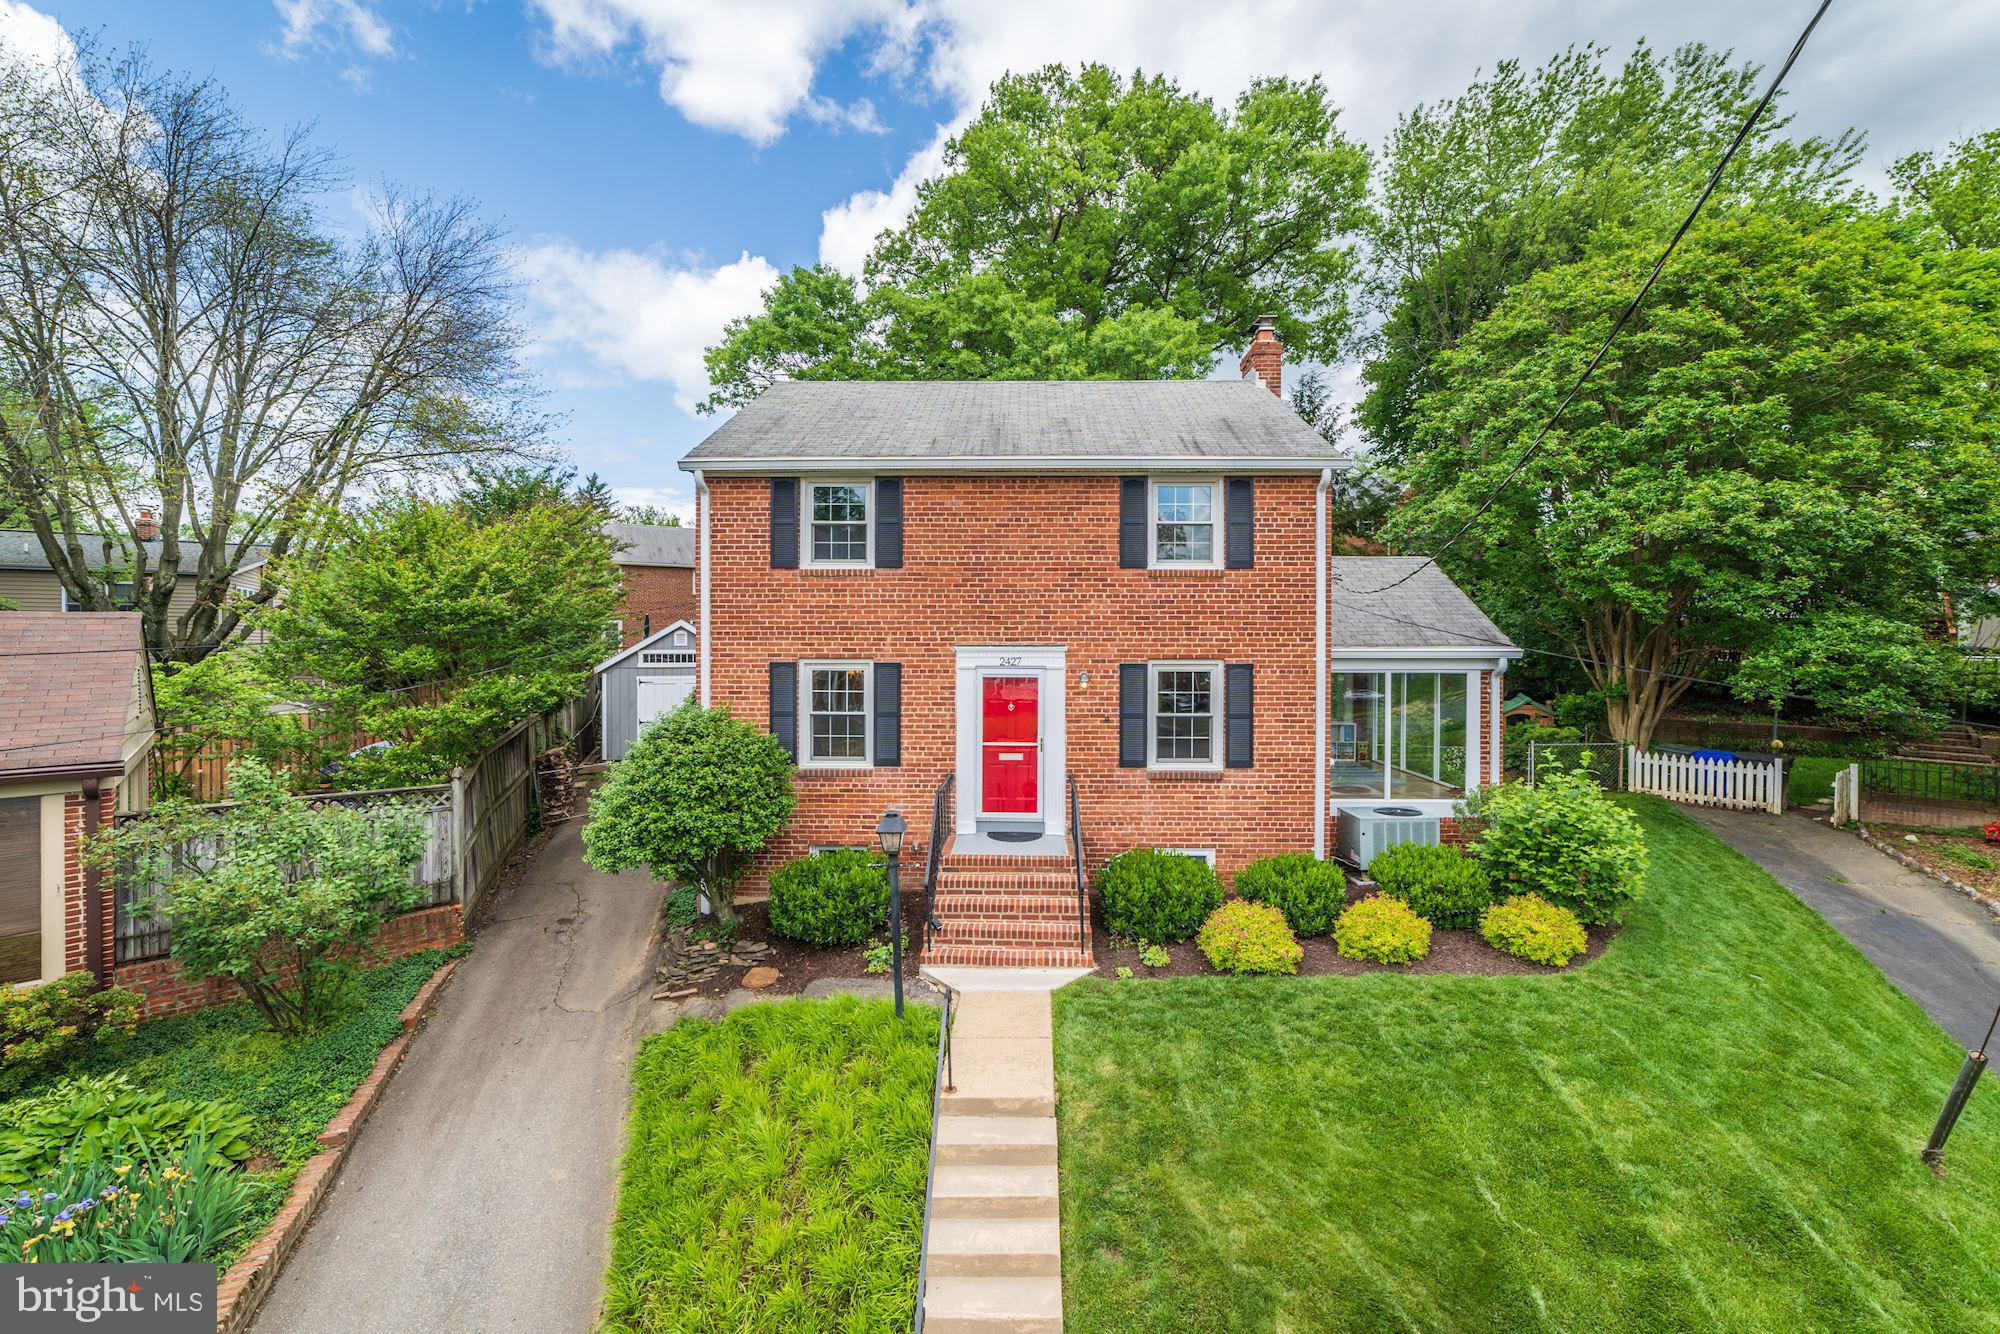 Offers Due Monday 5/20/19 at 1pm. Beautifully maintained 3 bedroom, 1.5 bath colonial on a quiet cul-de-sac in Arlington! This charming home features hardwood floors throughout, a formal living room with fireplace, sunroom and formal dining room. Enjoy an updated kitchen with brand new granite counters and stainless steel appliances that steps out to a fully fenced back yard with brand new storage shed. Upstairs, find three well-appointed bedrooms all sharing an renovated hall bath. A lower level basement with rear walk-up provides ample storage and laundry space. Ideally located just 1/2 mile from East Falls Church Metro and I-66!